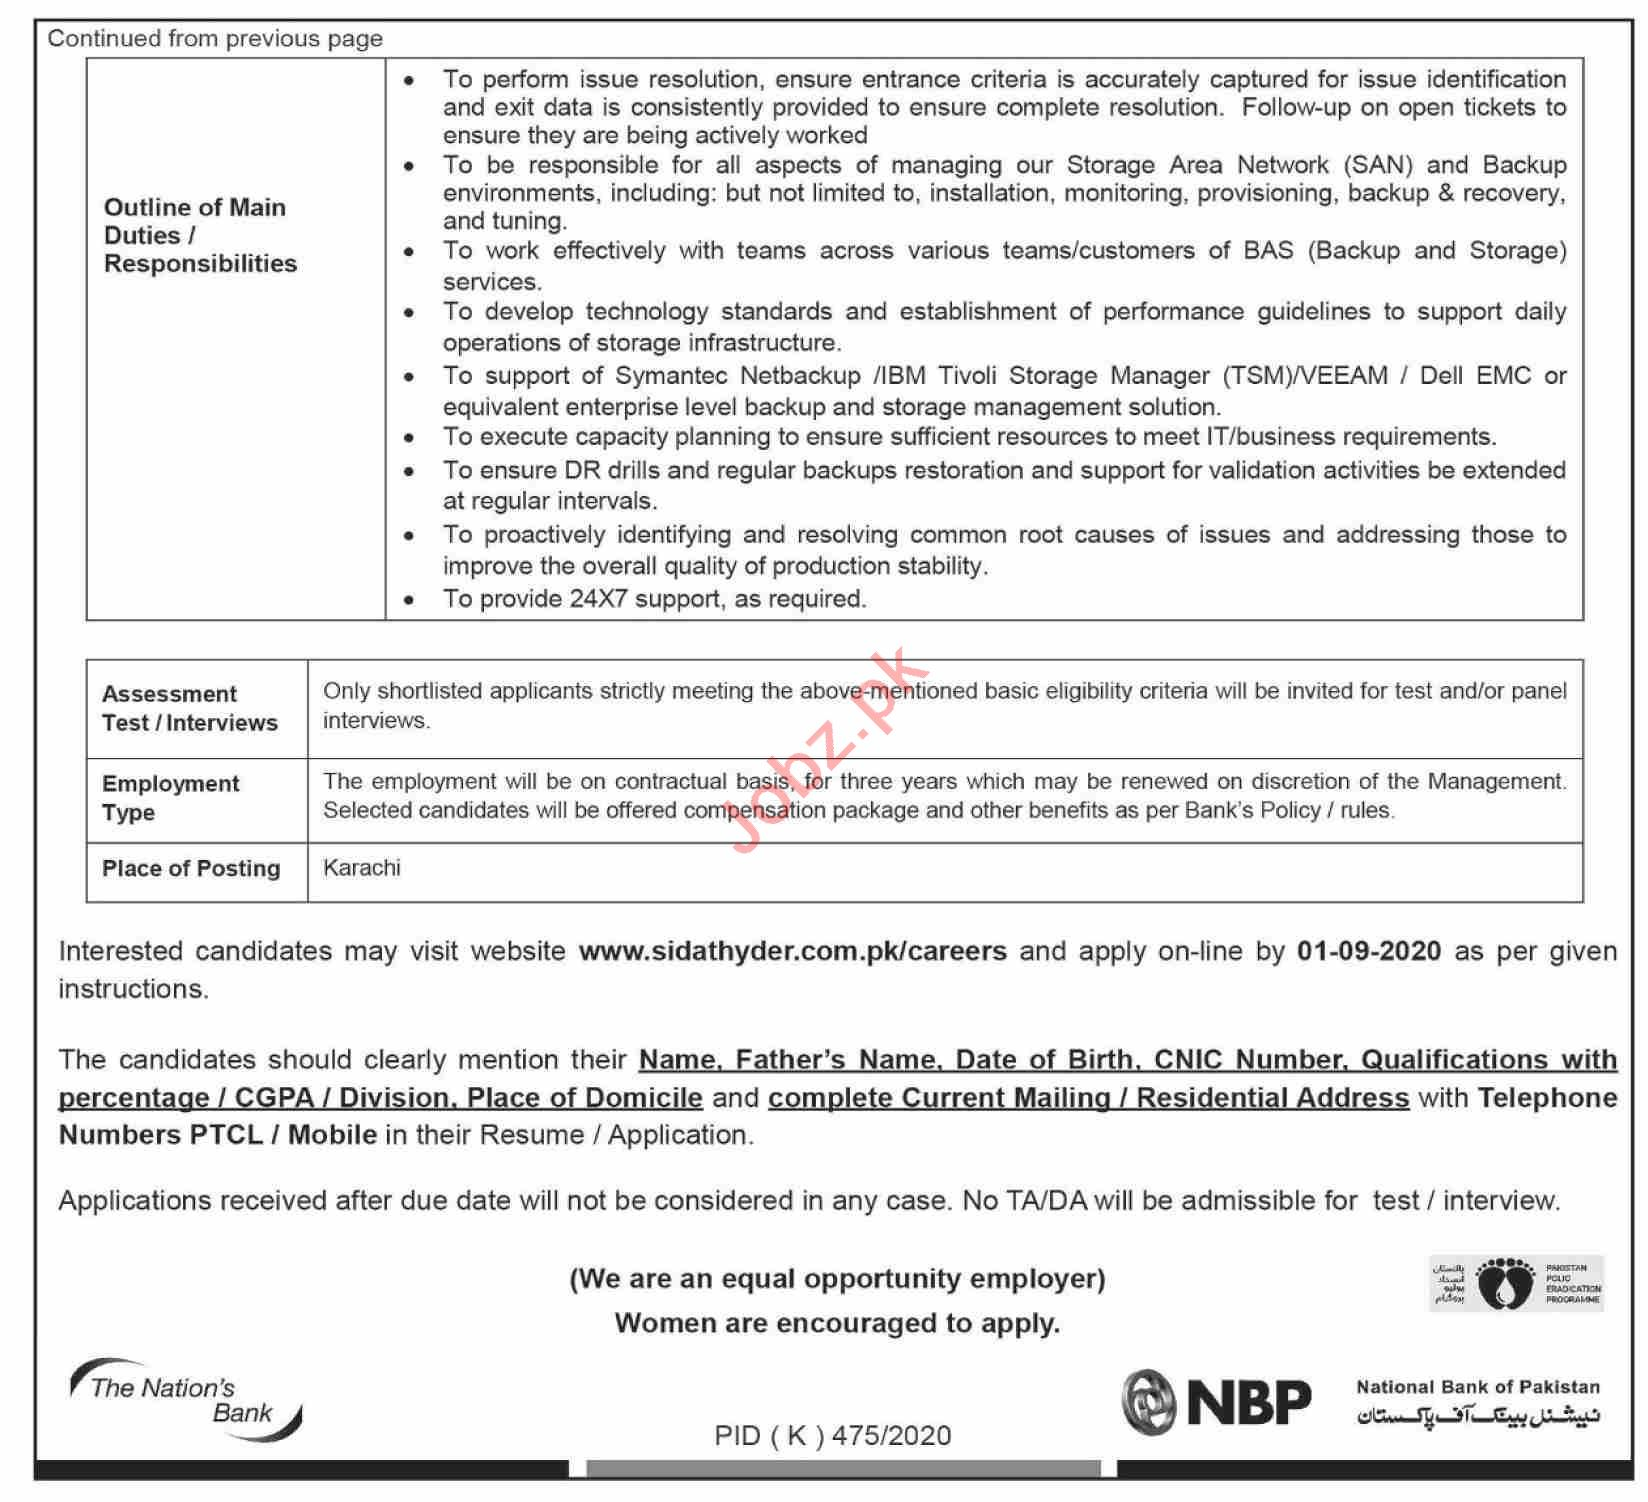 National Bank of Pakistan NBP Karachi Jobs 2020